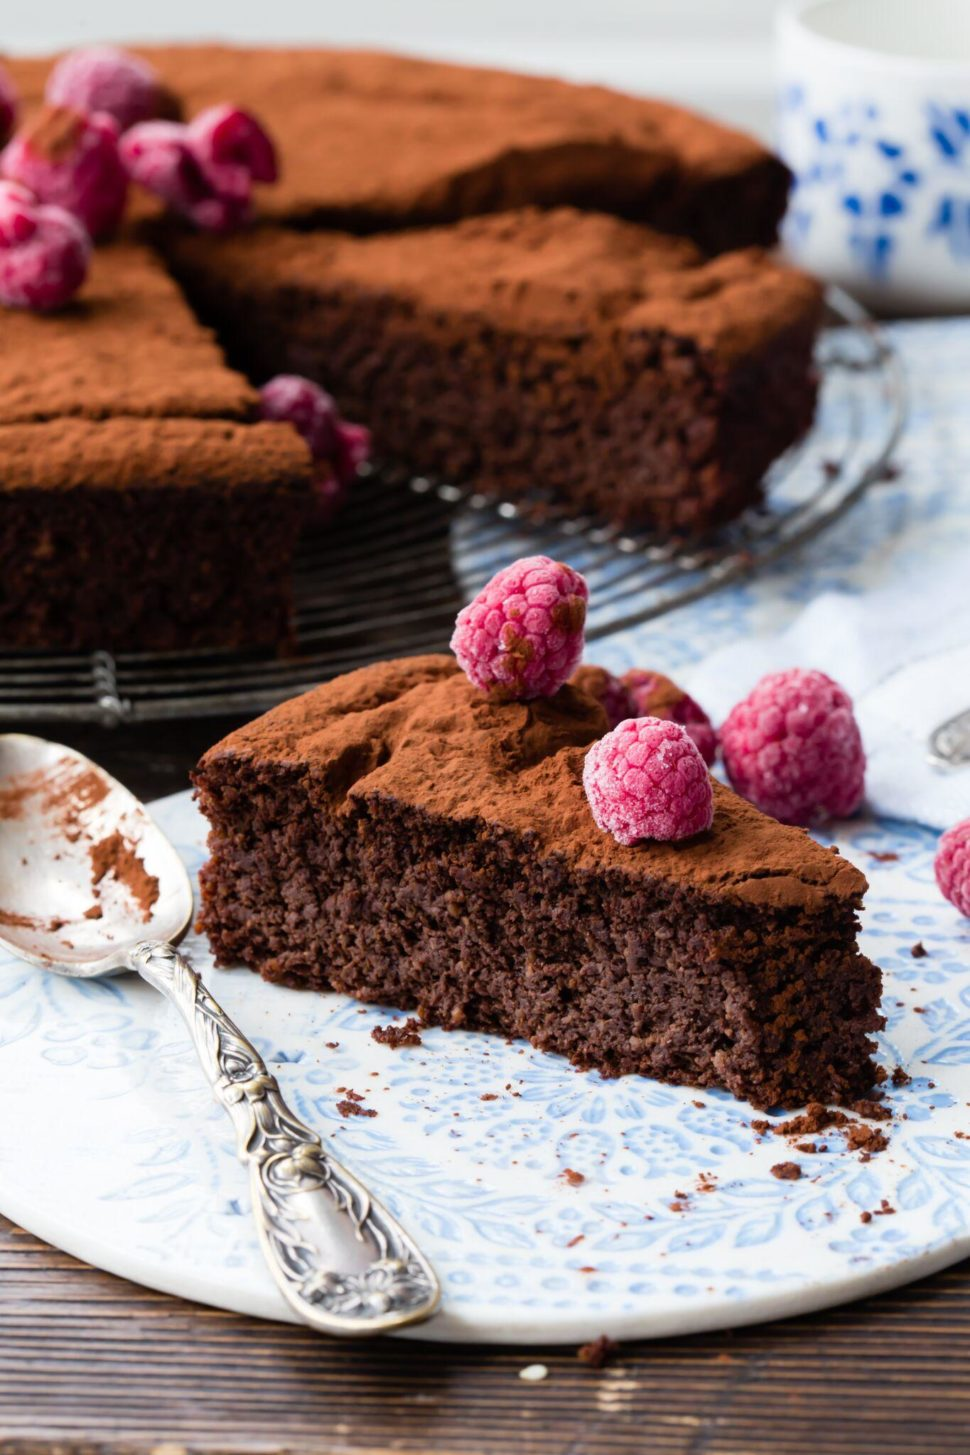 Thermomix Flourless Chocolate Cake